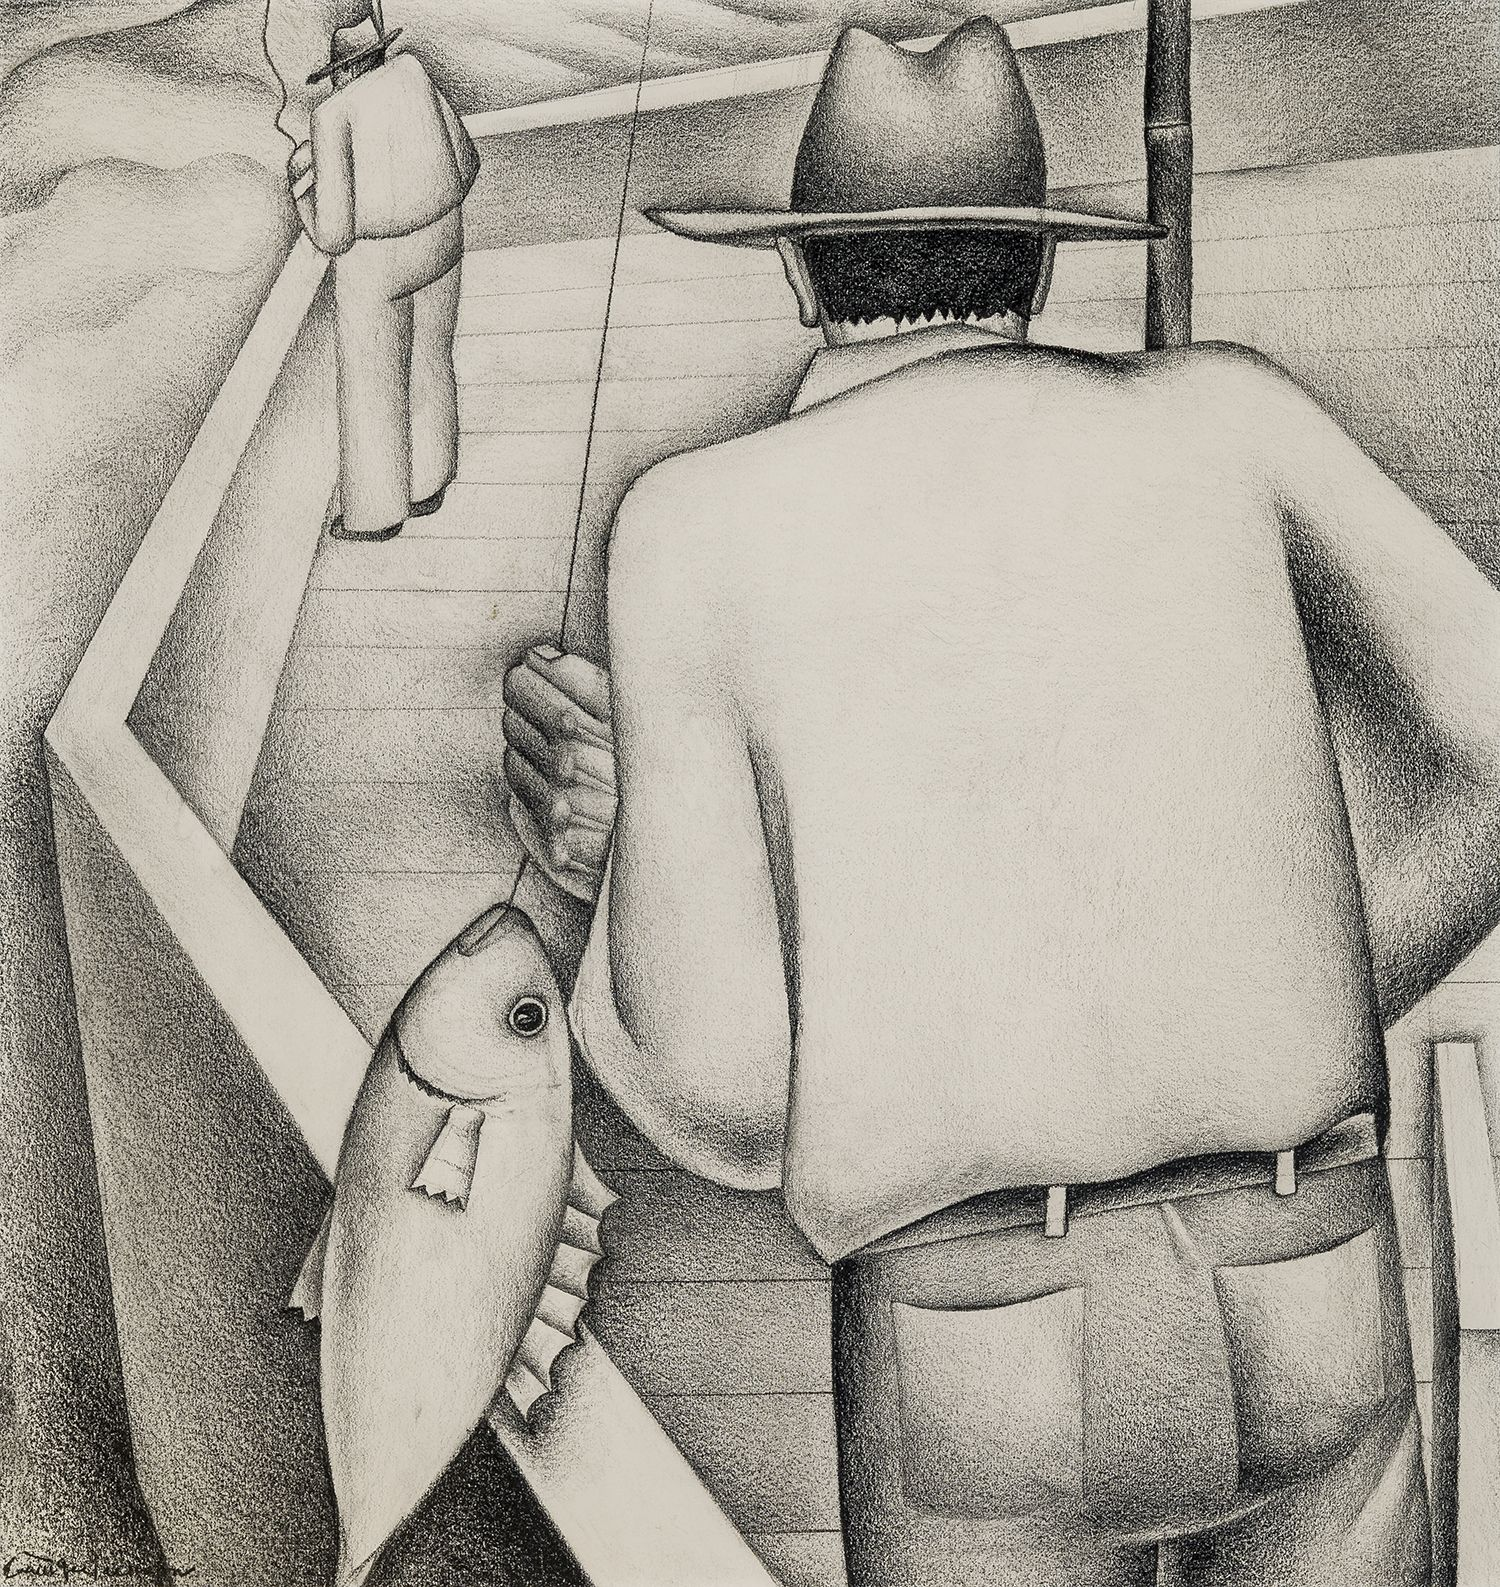 Fishermen, c. 1933, Graphite on paper, 15 x 15 in.